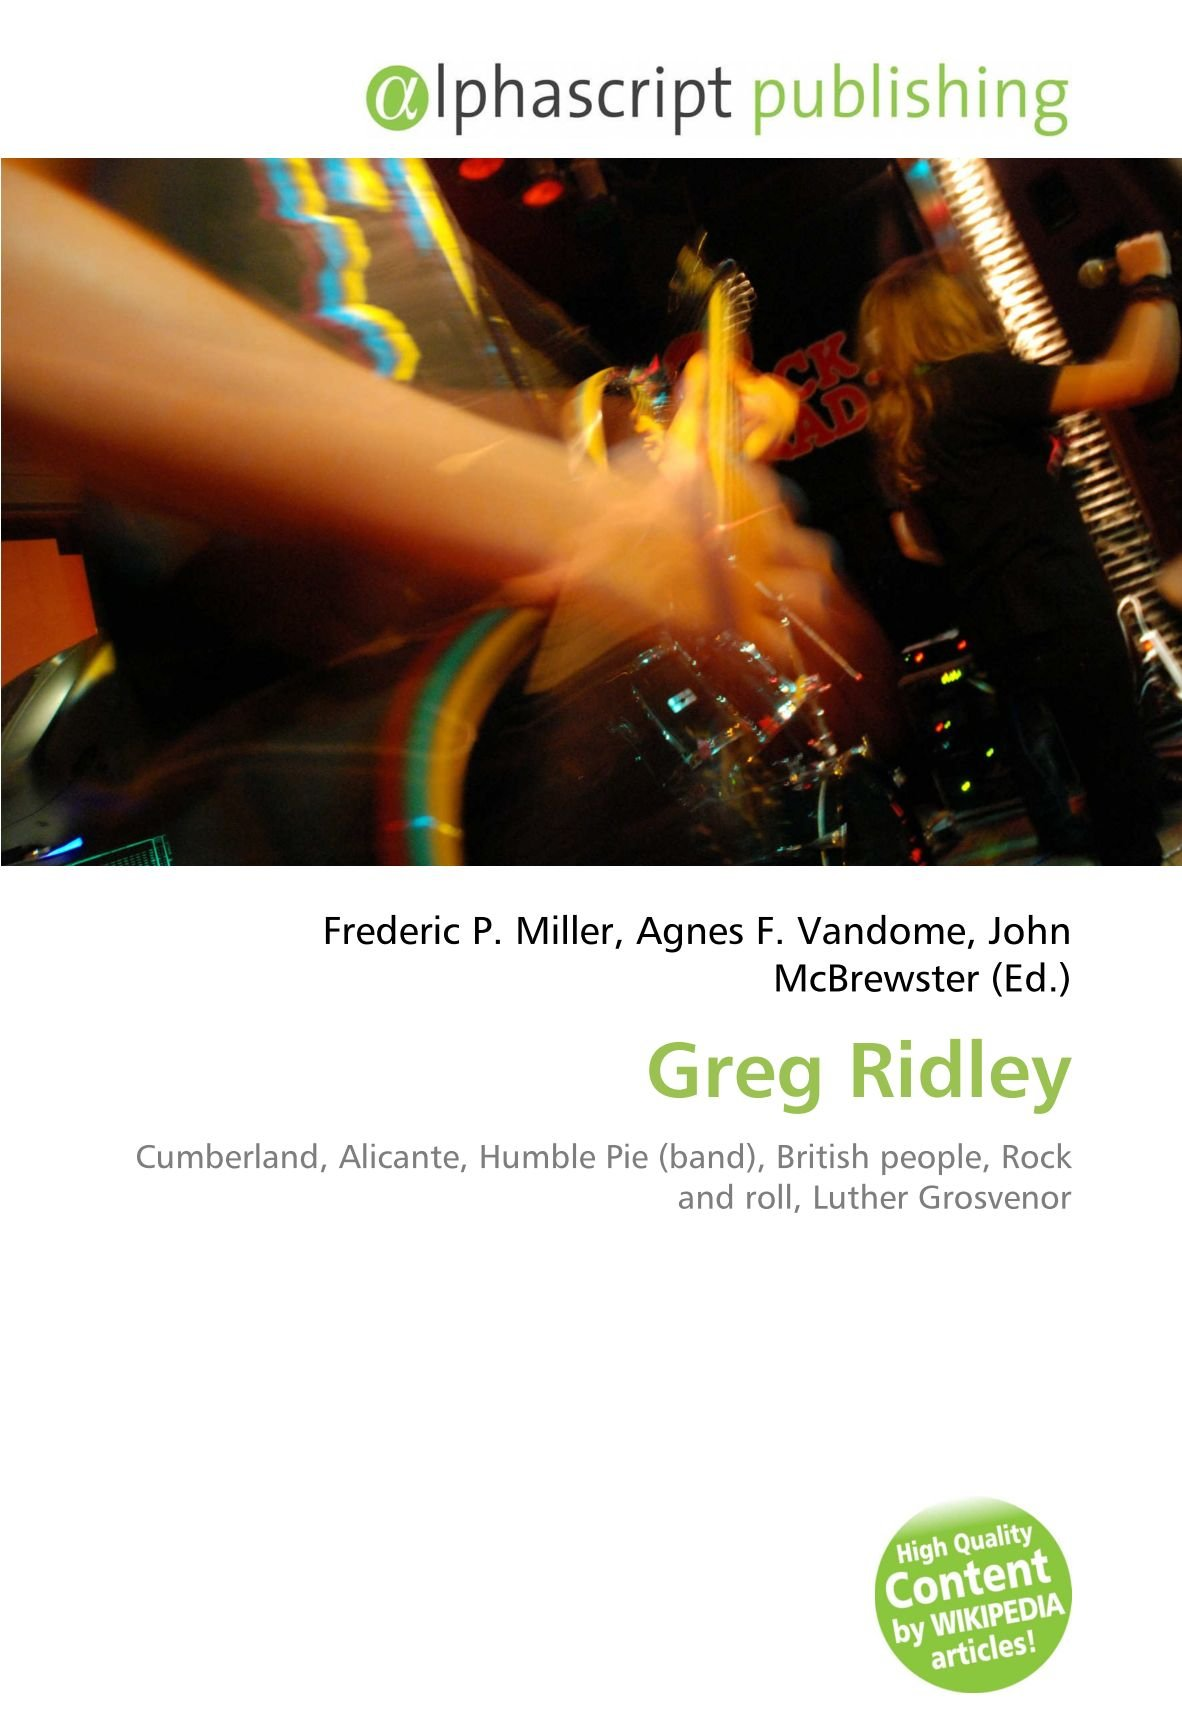 Greg Ridley: Cumberland, Alicante, Humble Pie band , British people, Rock and roll, Luther Grosvenor: Amazon.es: Frederic P Miller, Agnes F Vandome, ...